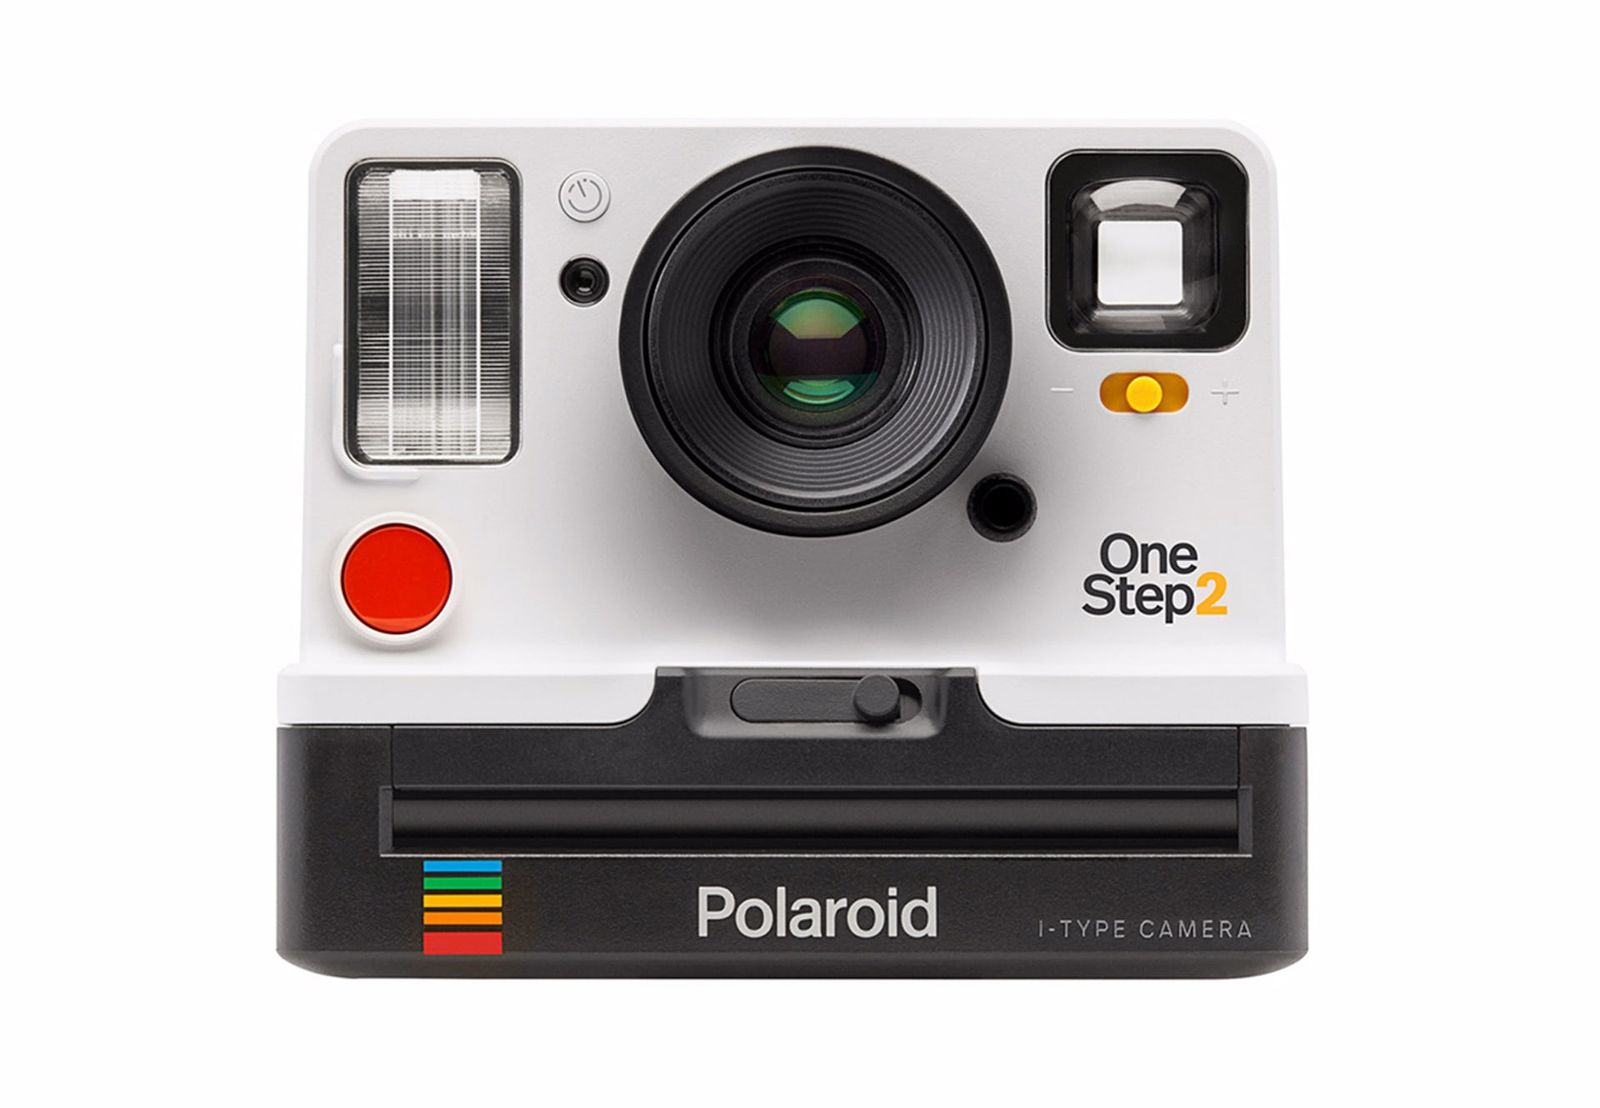 The reference picture, the same white polaroid camera, on a white background